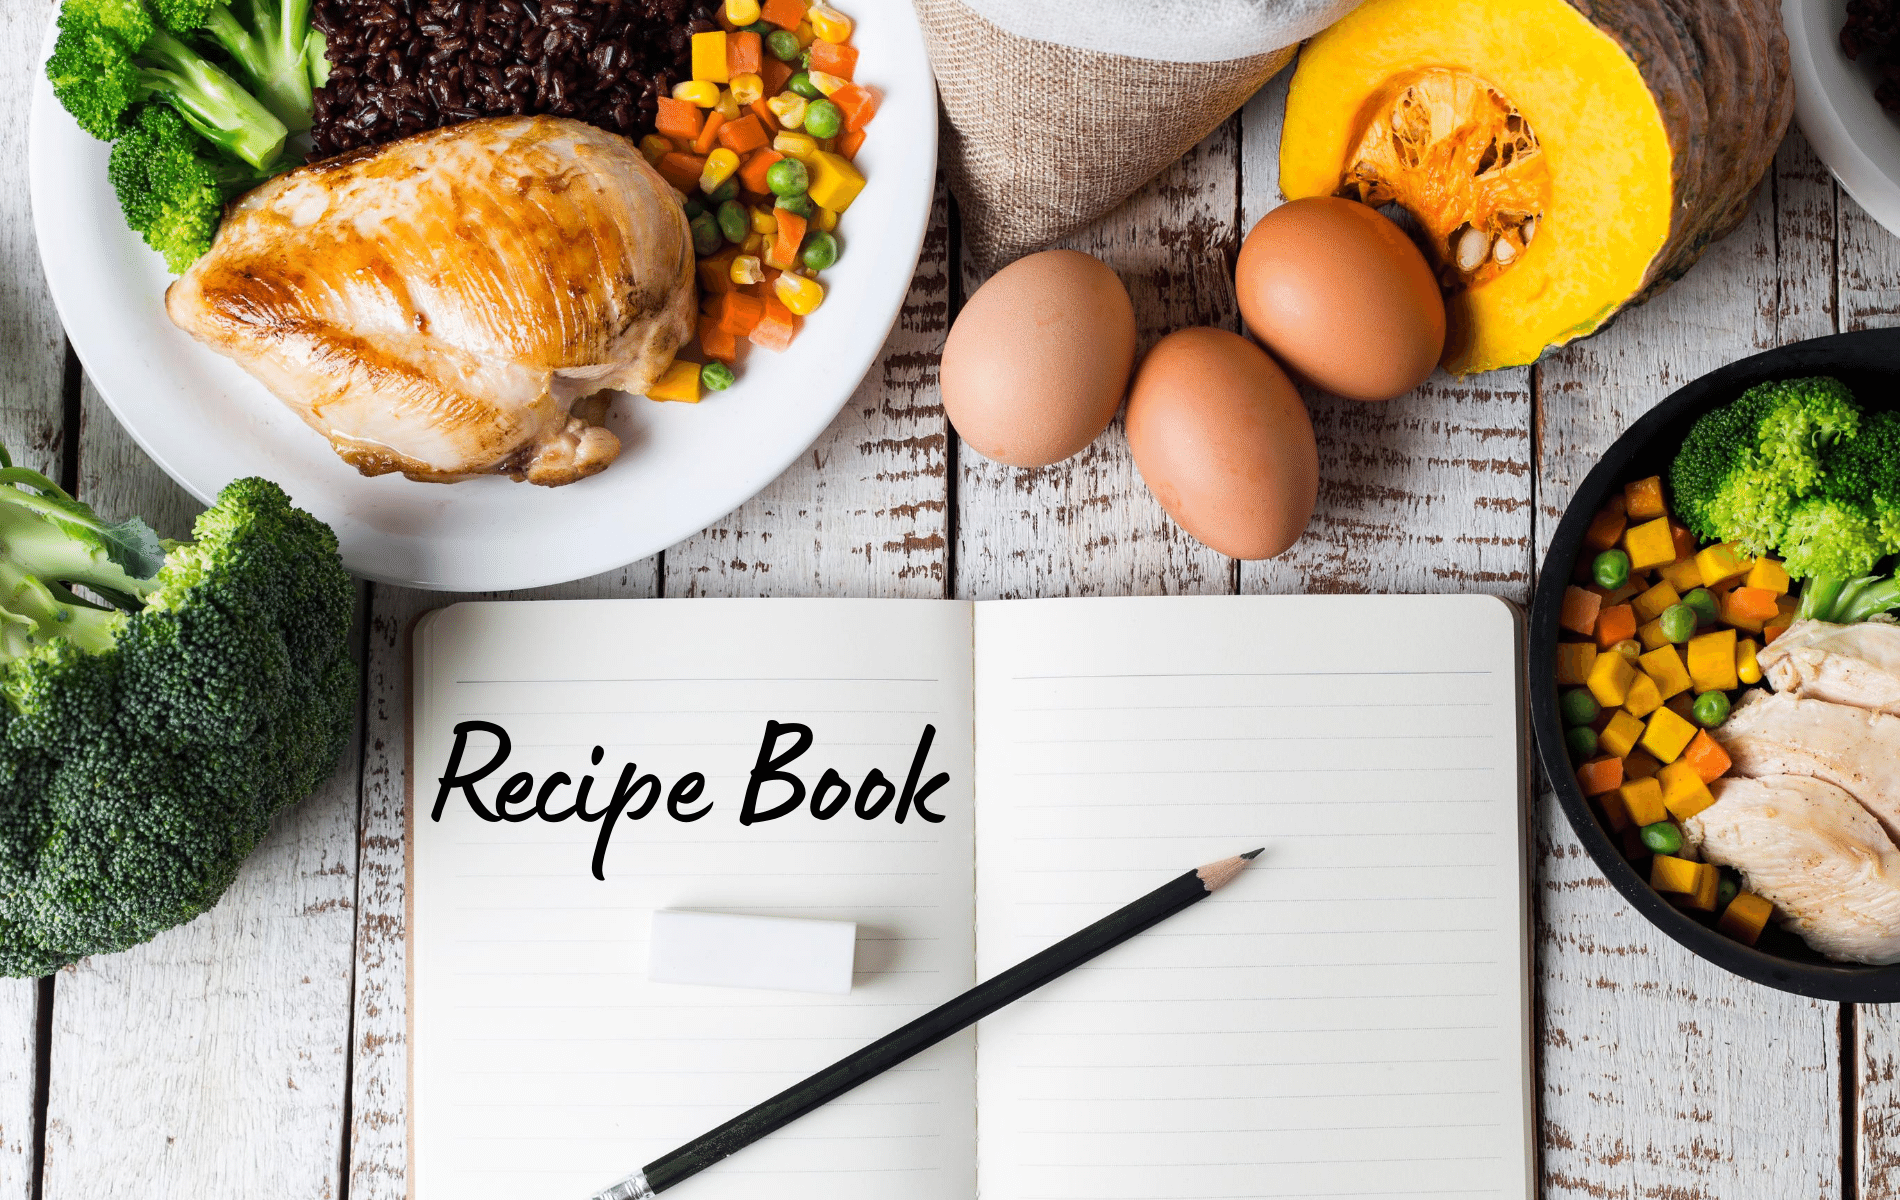 Bonus 3 - Your Fabulous Recipe Book